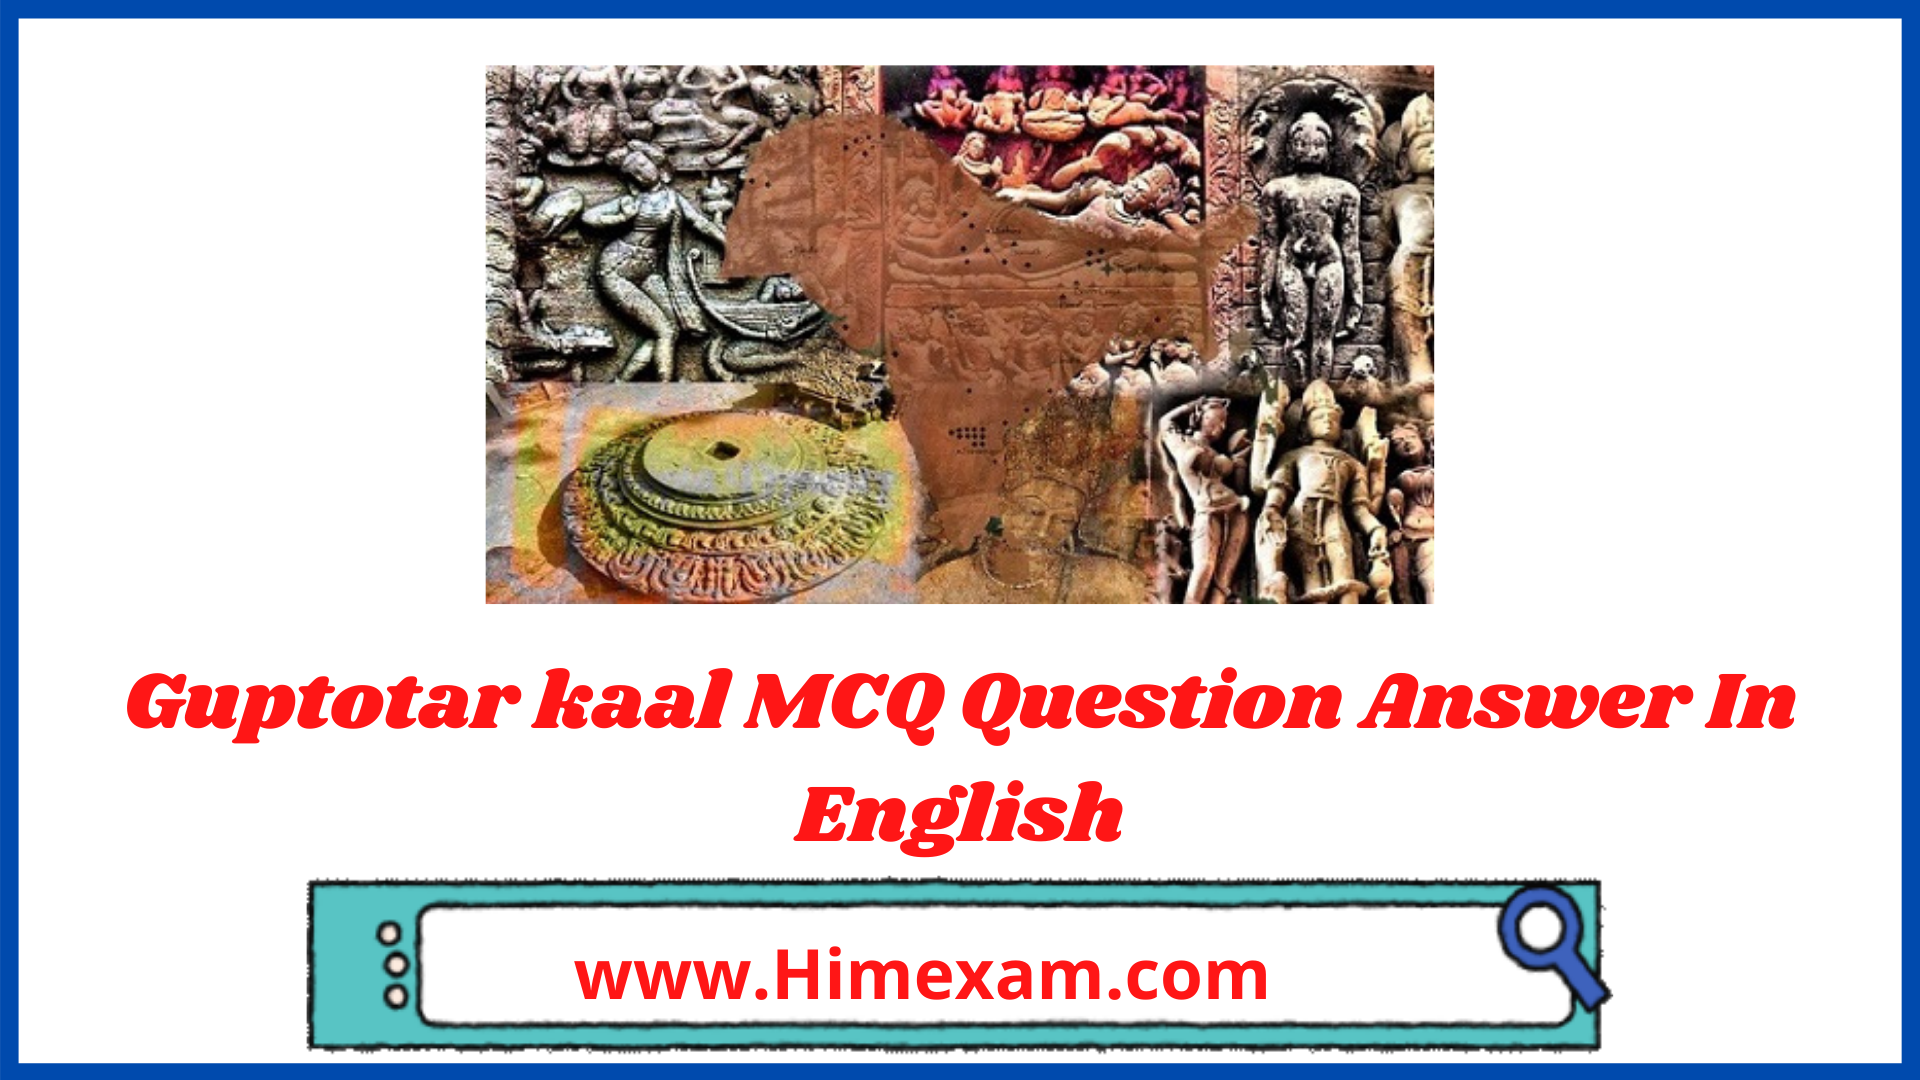 Guptotar kaal MCQ Question Answer In English